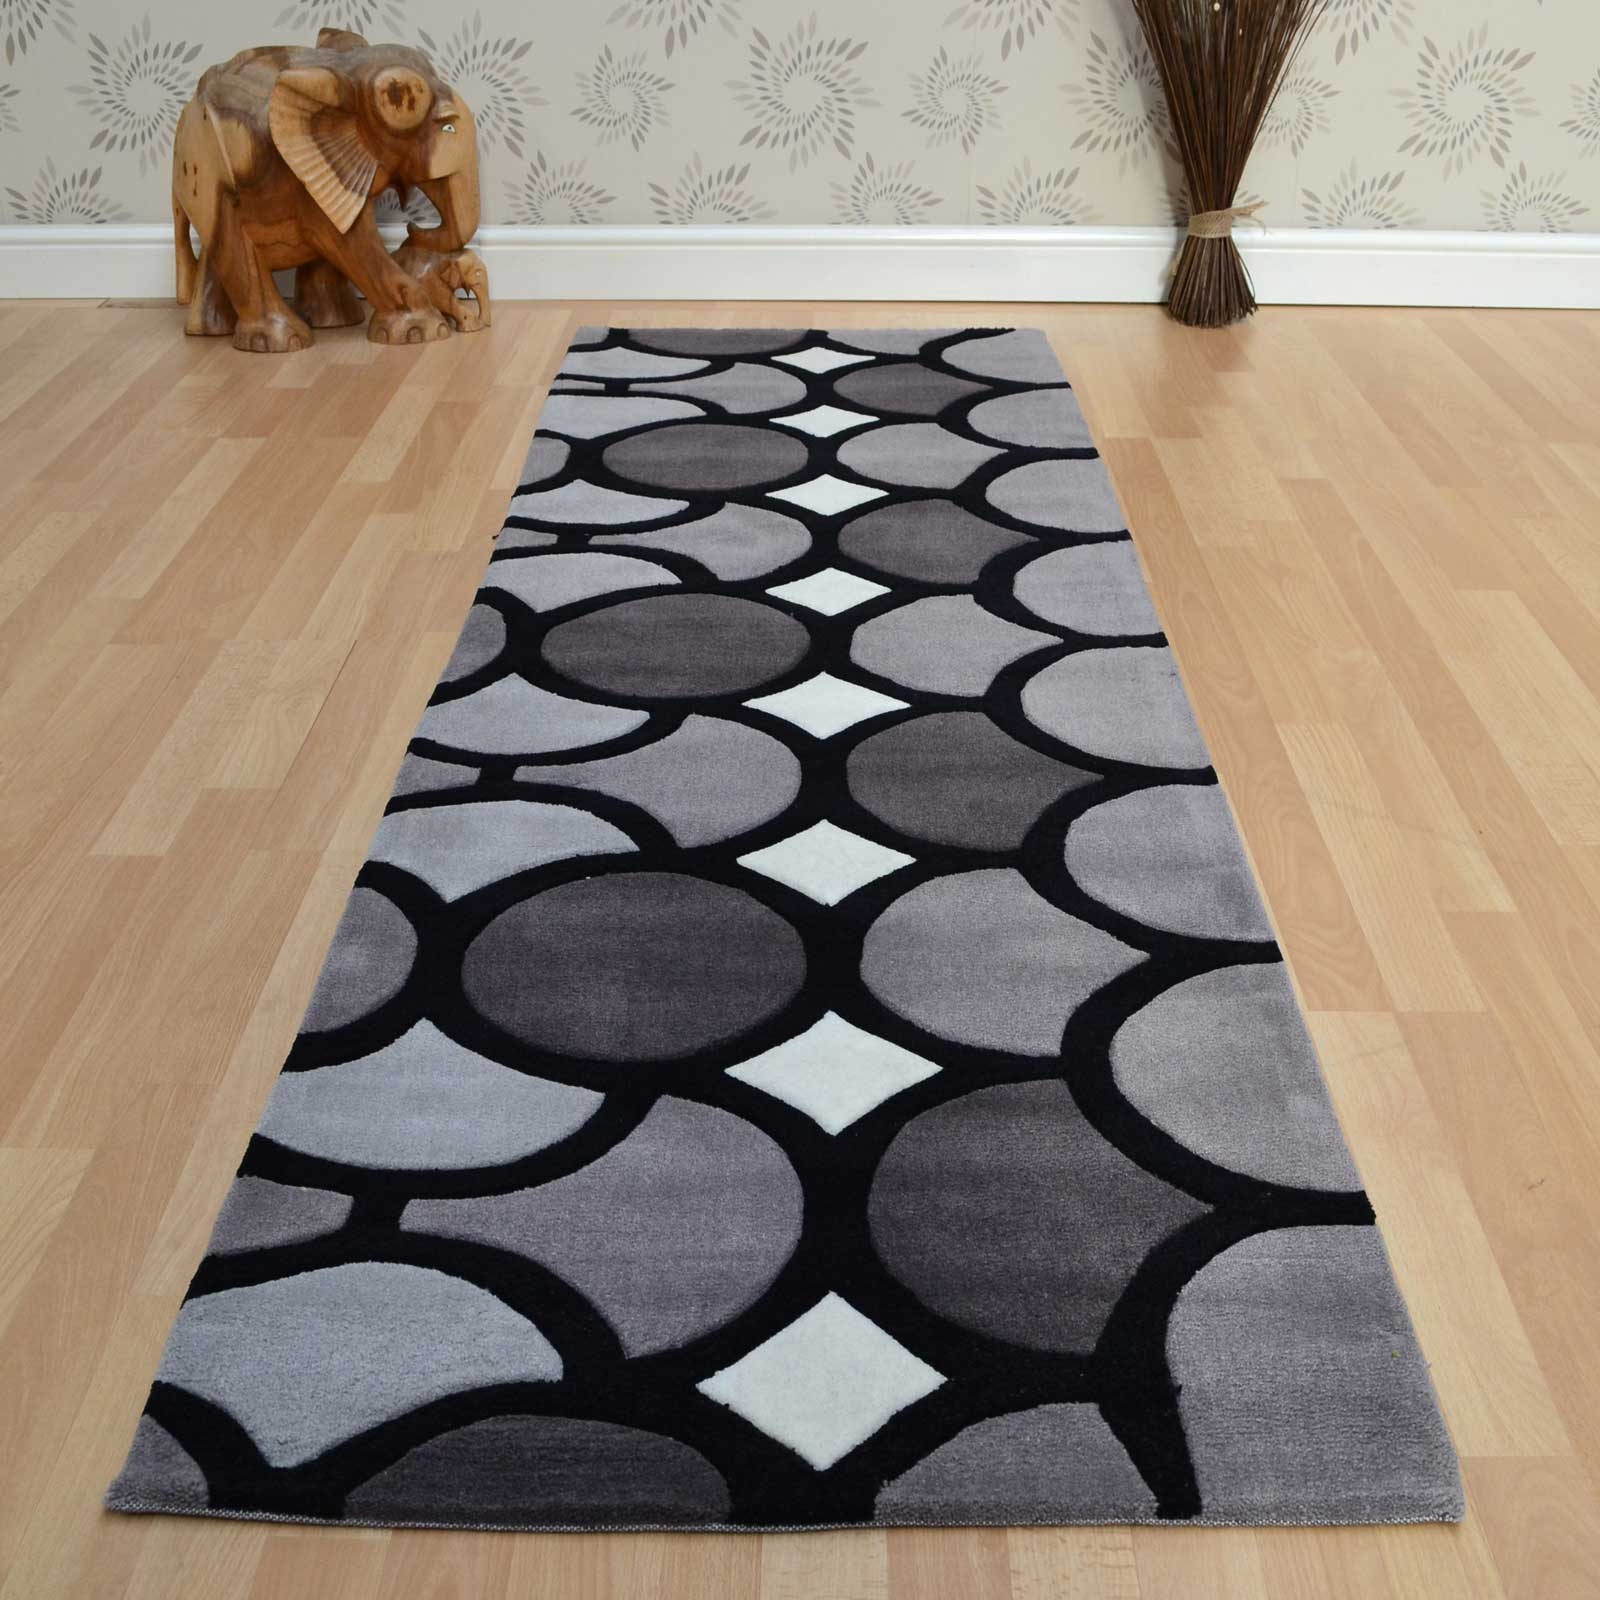 Rug Runners Contemporary: 20 Ideas Of Modern Runner Rugs For Hallway